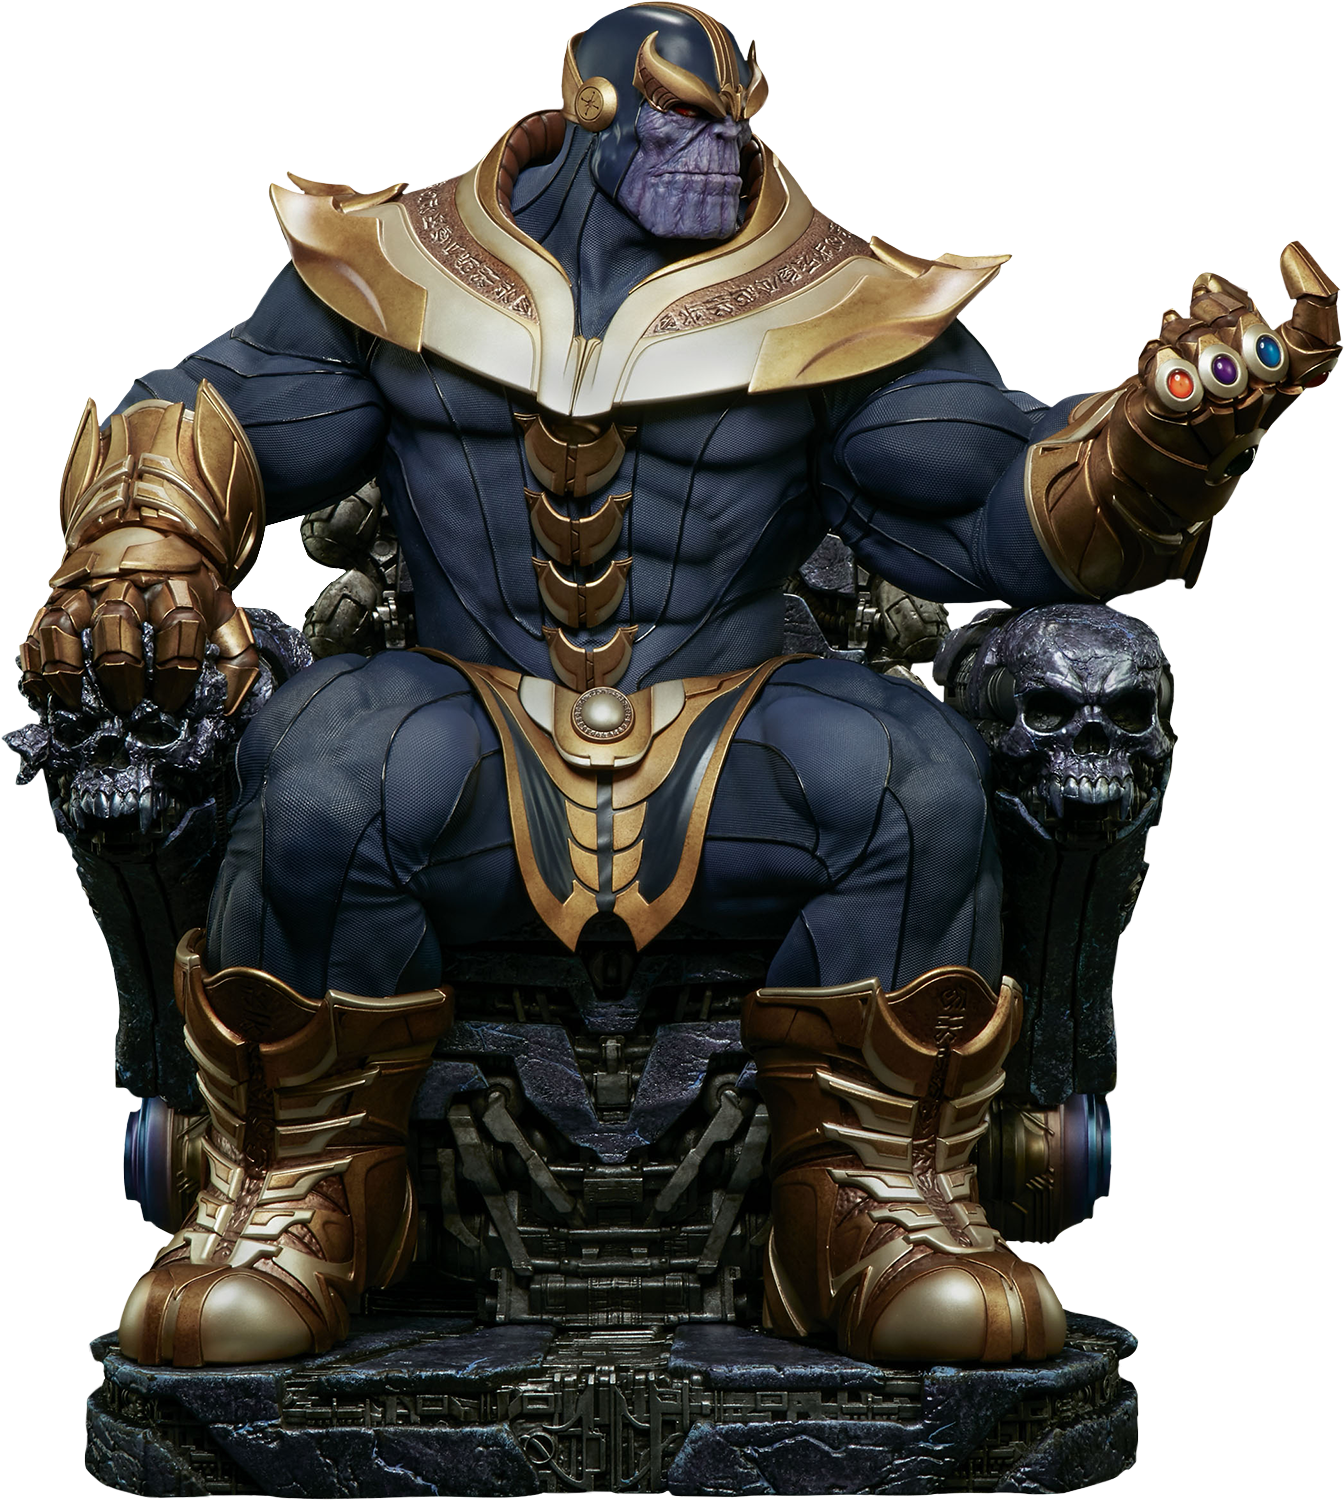 The Infinity Gauntlet Thanos On Throne 21 Maquette Statue By Sideshow Collectibles Popcultcha Marvel Statues Marvel Thanos Marvel